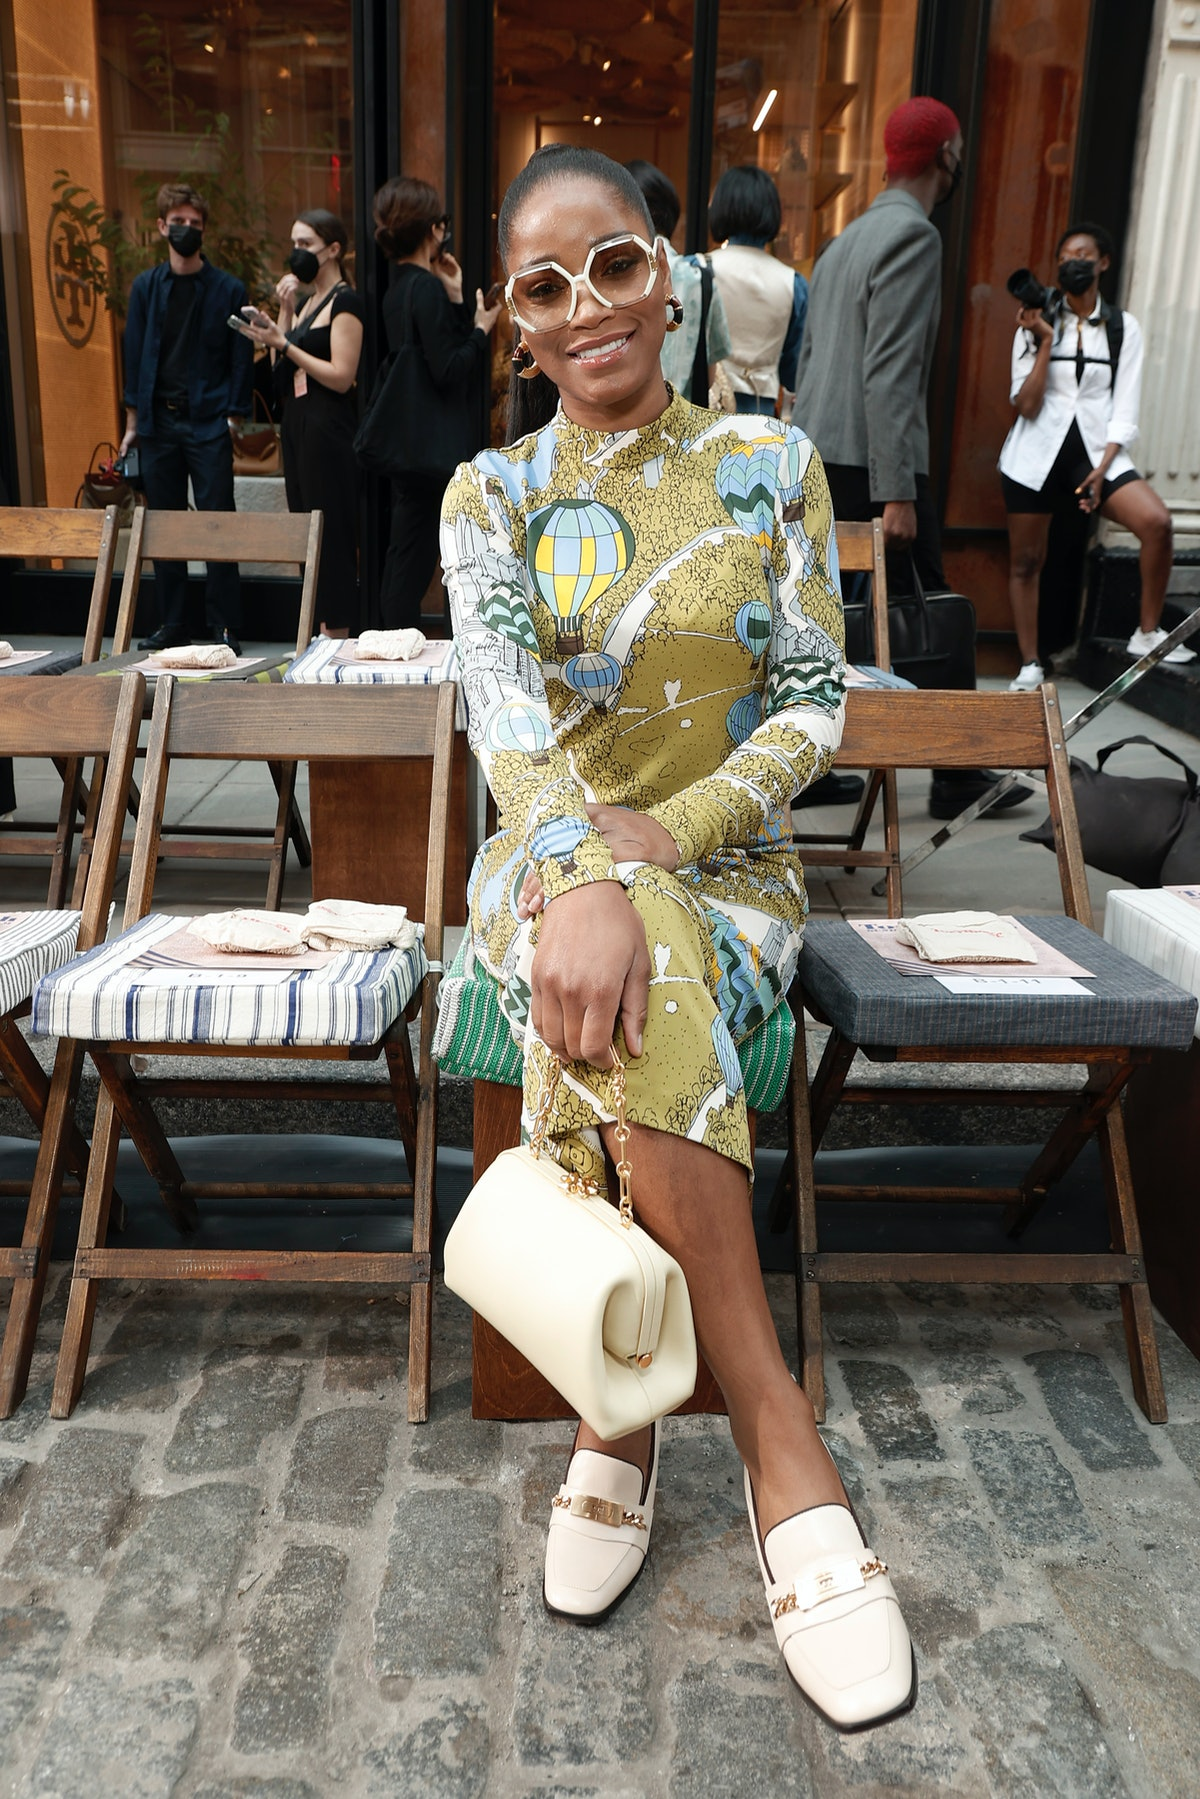 Keke Palmer attends the Tory Burch Spring/Summer 2022 Collection & Mercer Street Block Party on Sept...